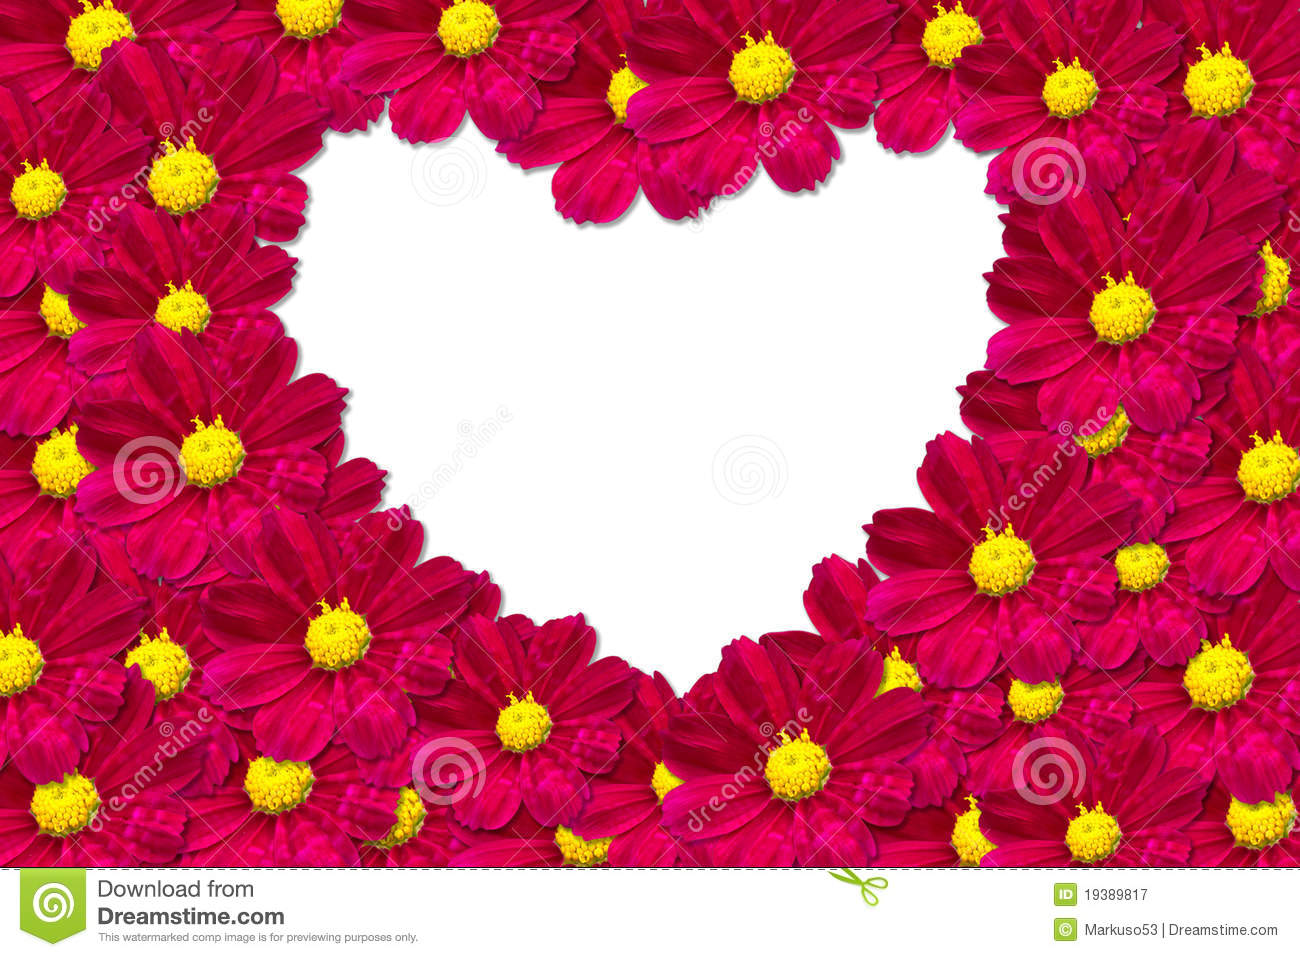 daisy heart shape stock photos, images,  pictures   images, Beautiful flower